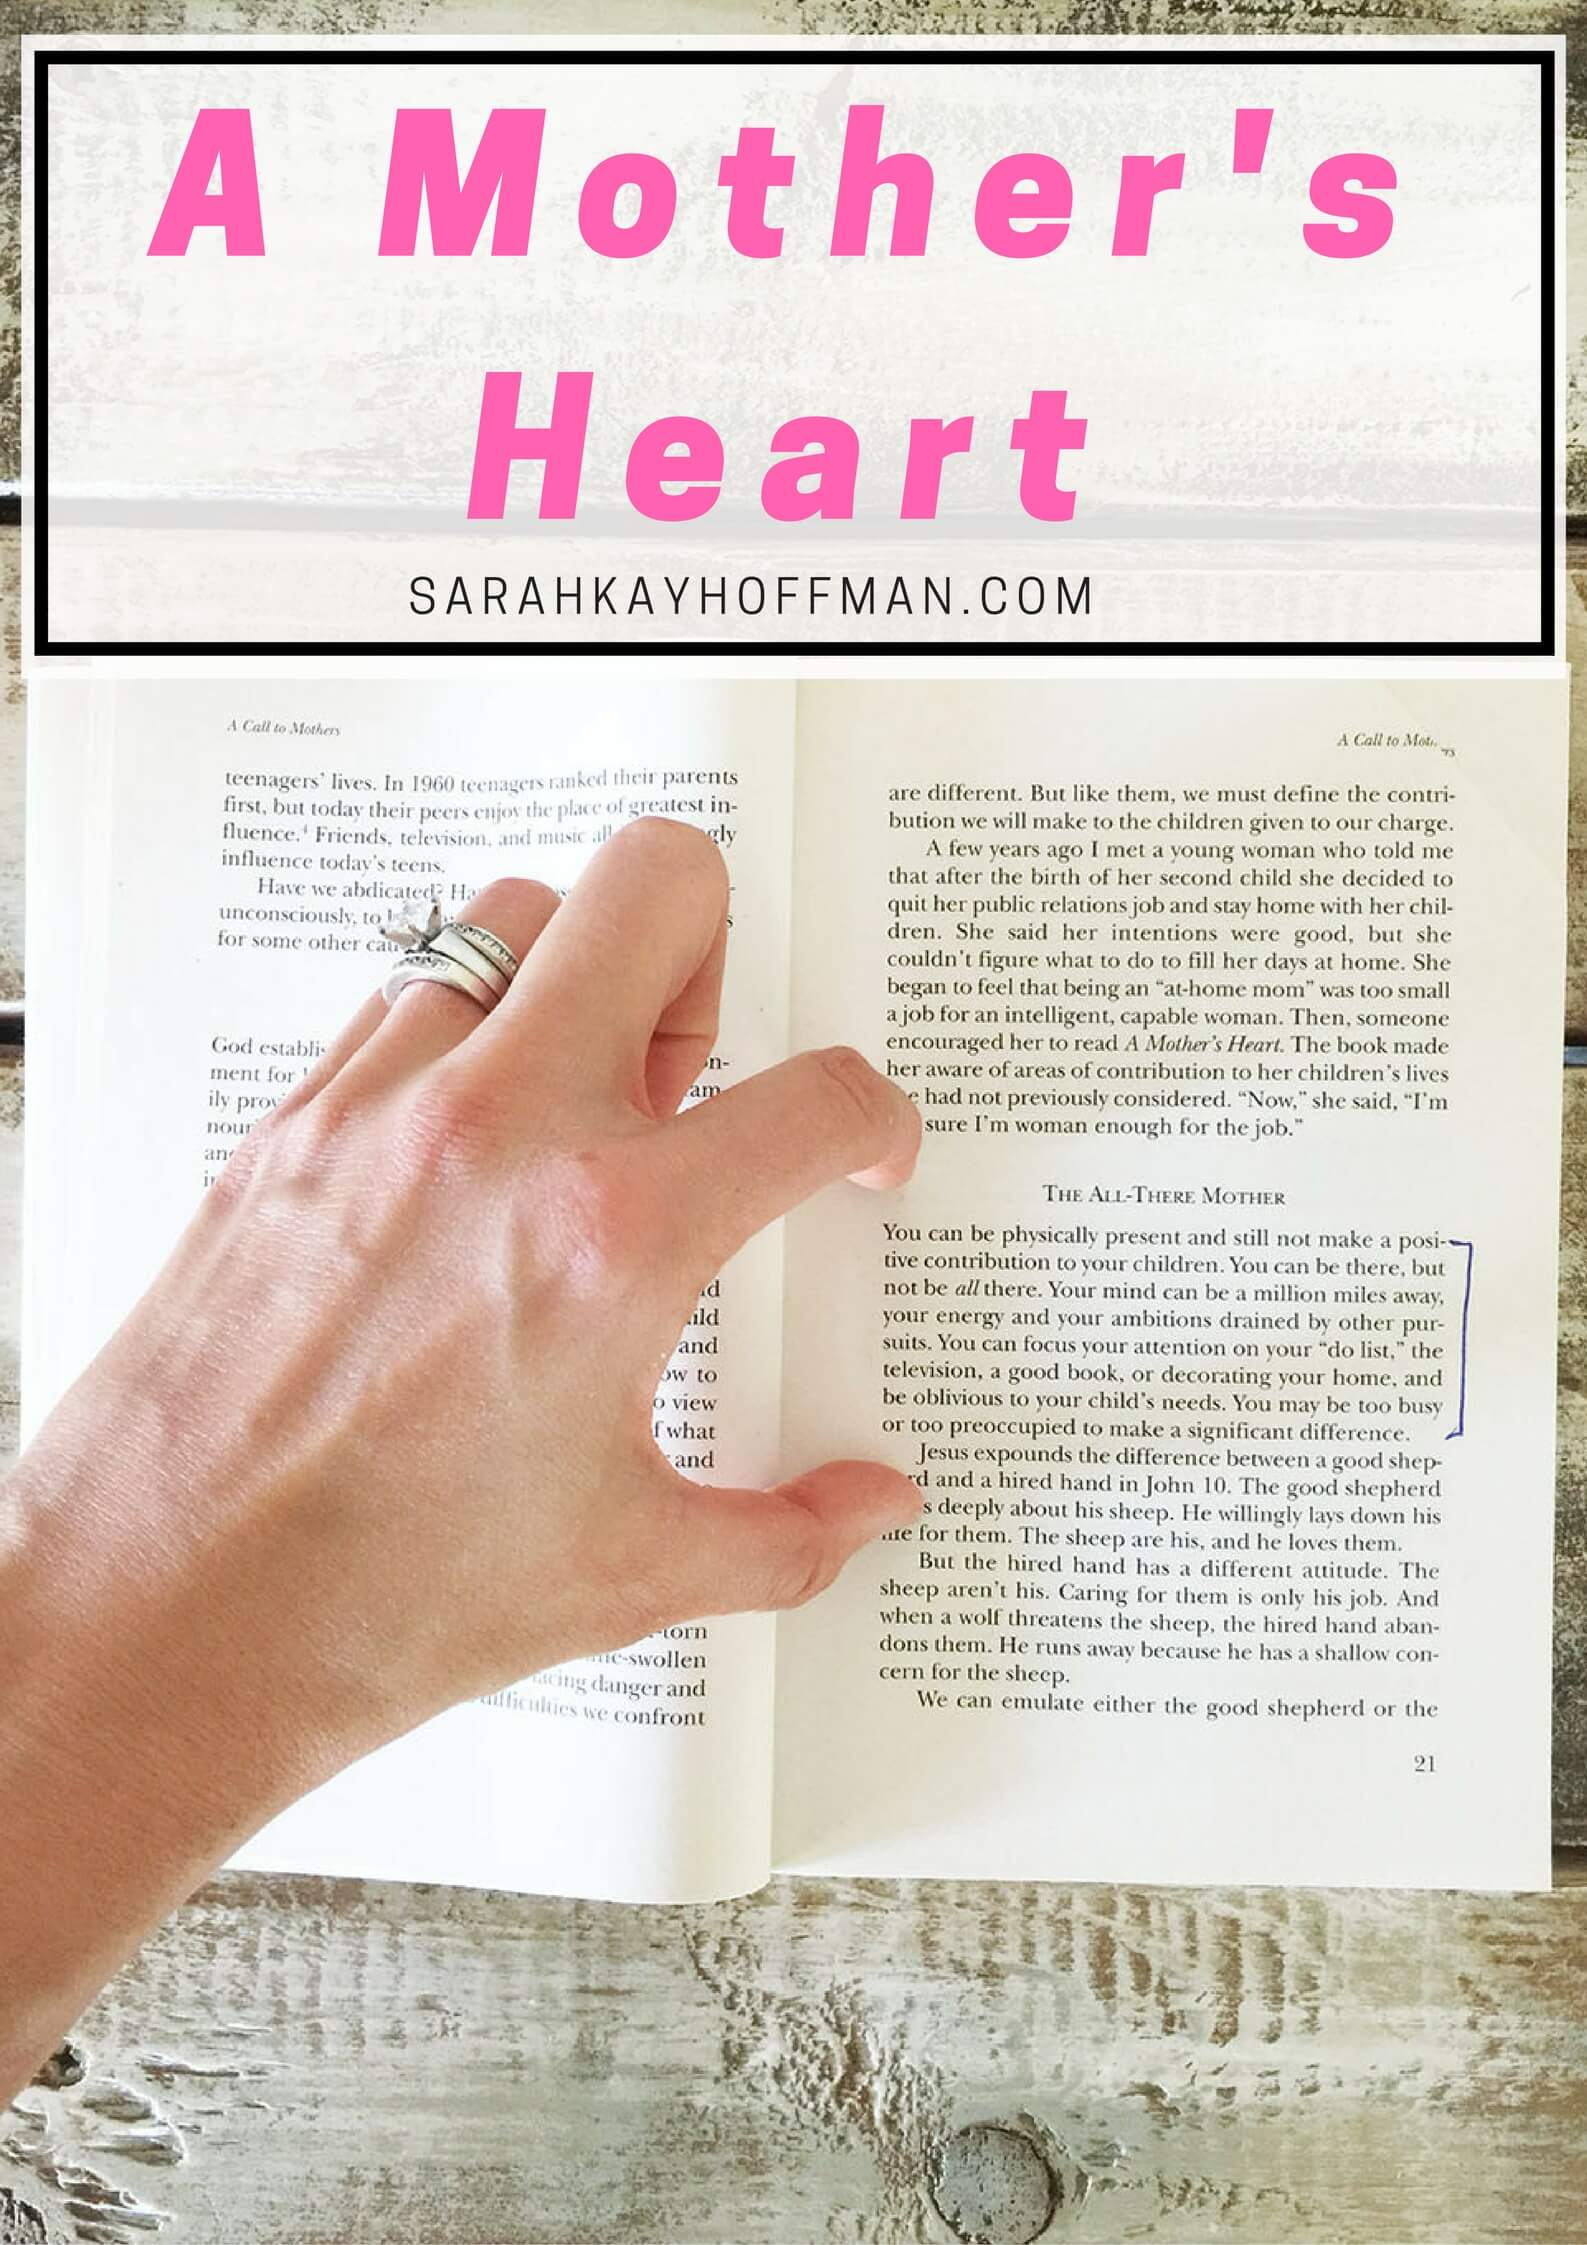 The All There Mother A Mother's Heart sarahkayhoffman.com Virtual Book Club